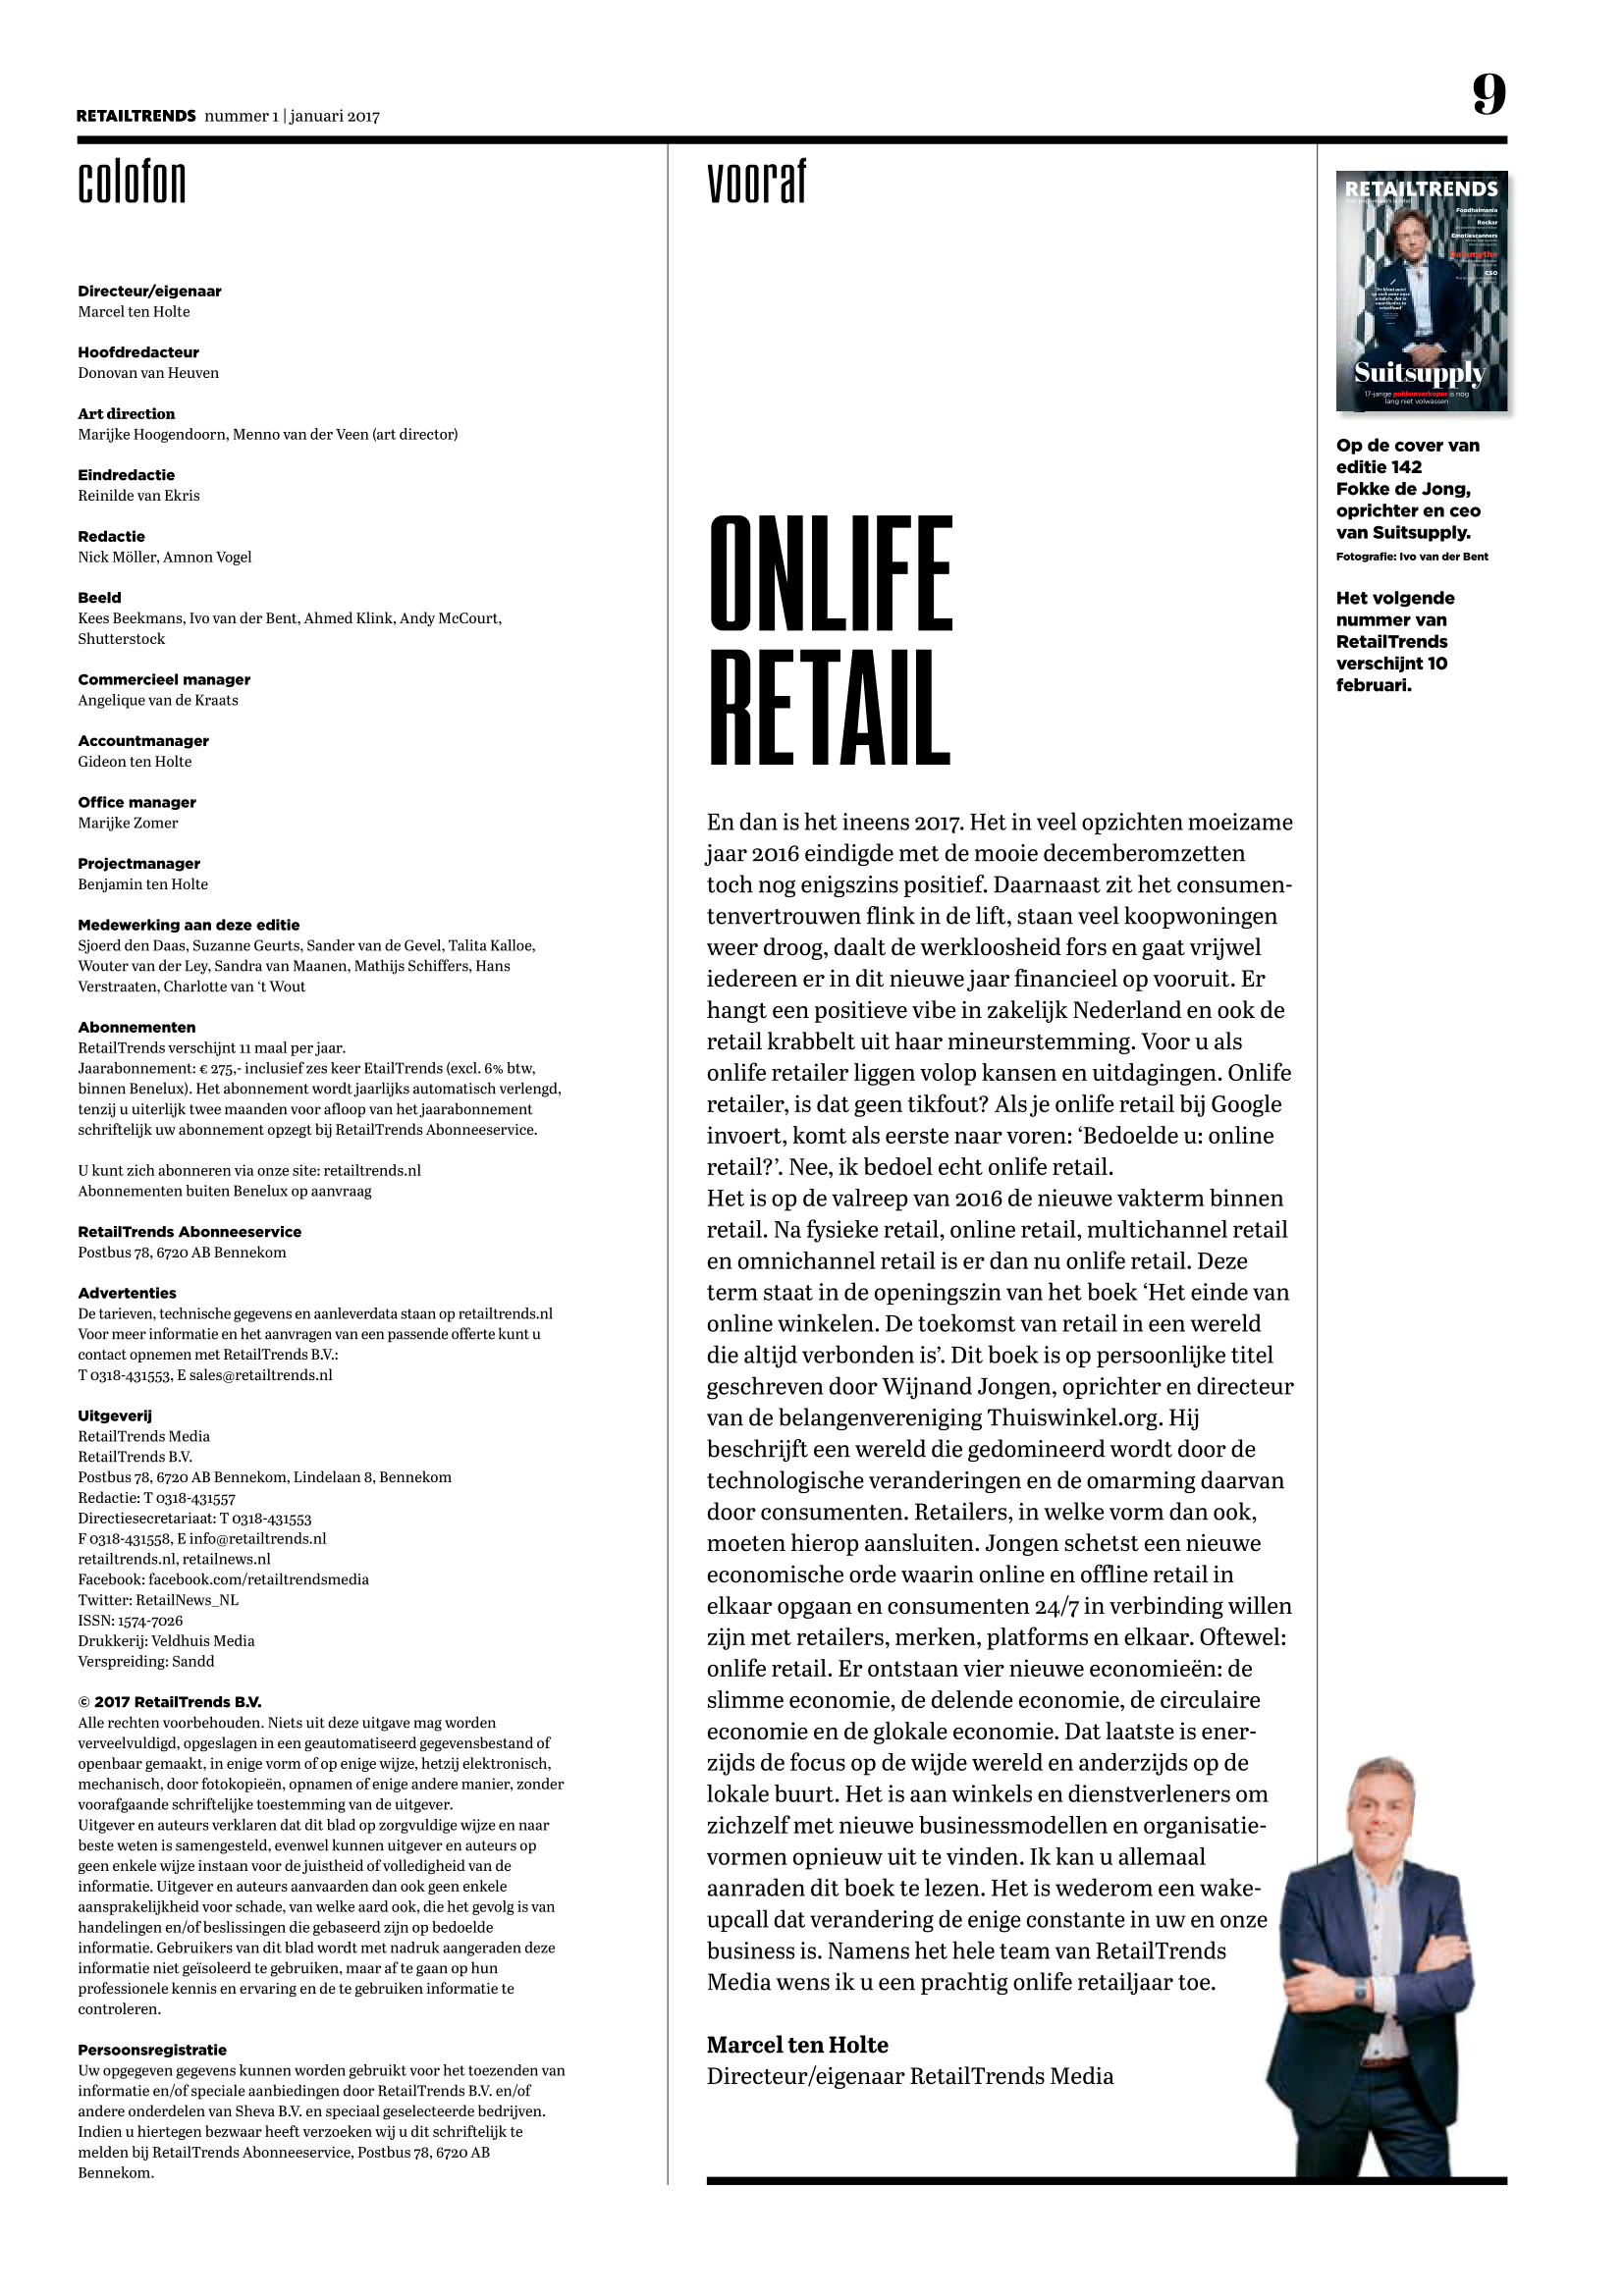 Onlife Retail door Marcel ten Holte